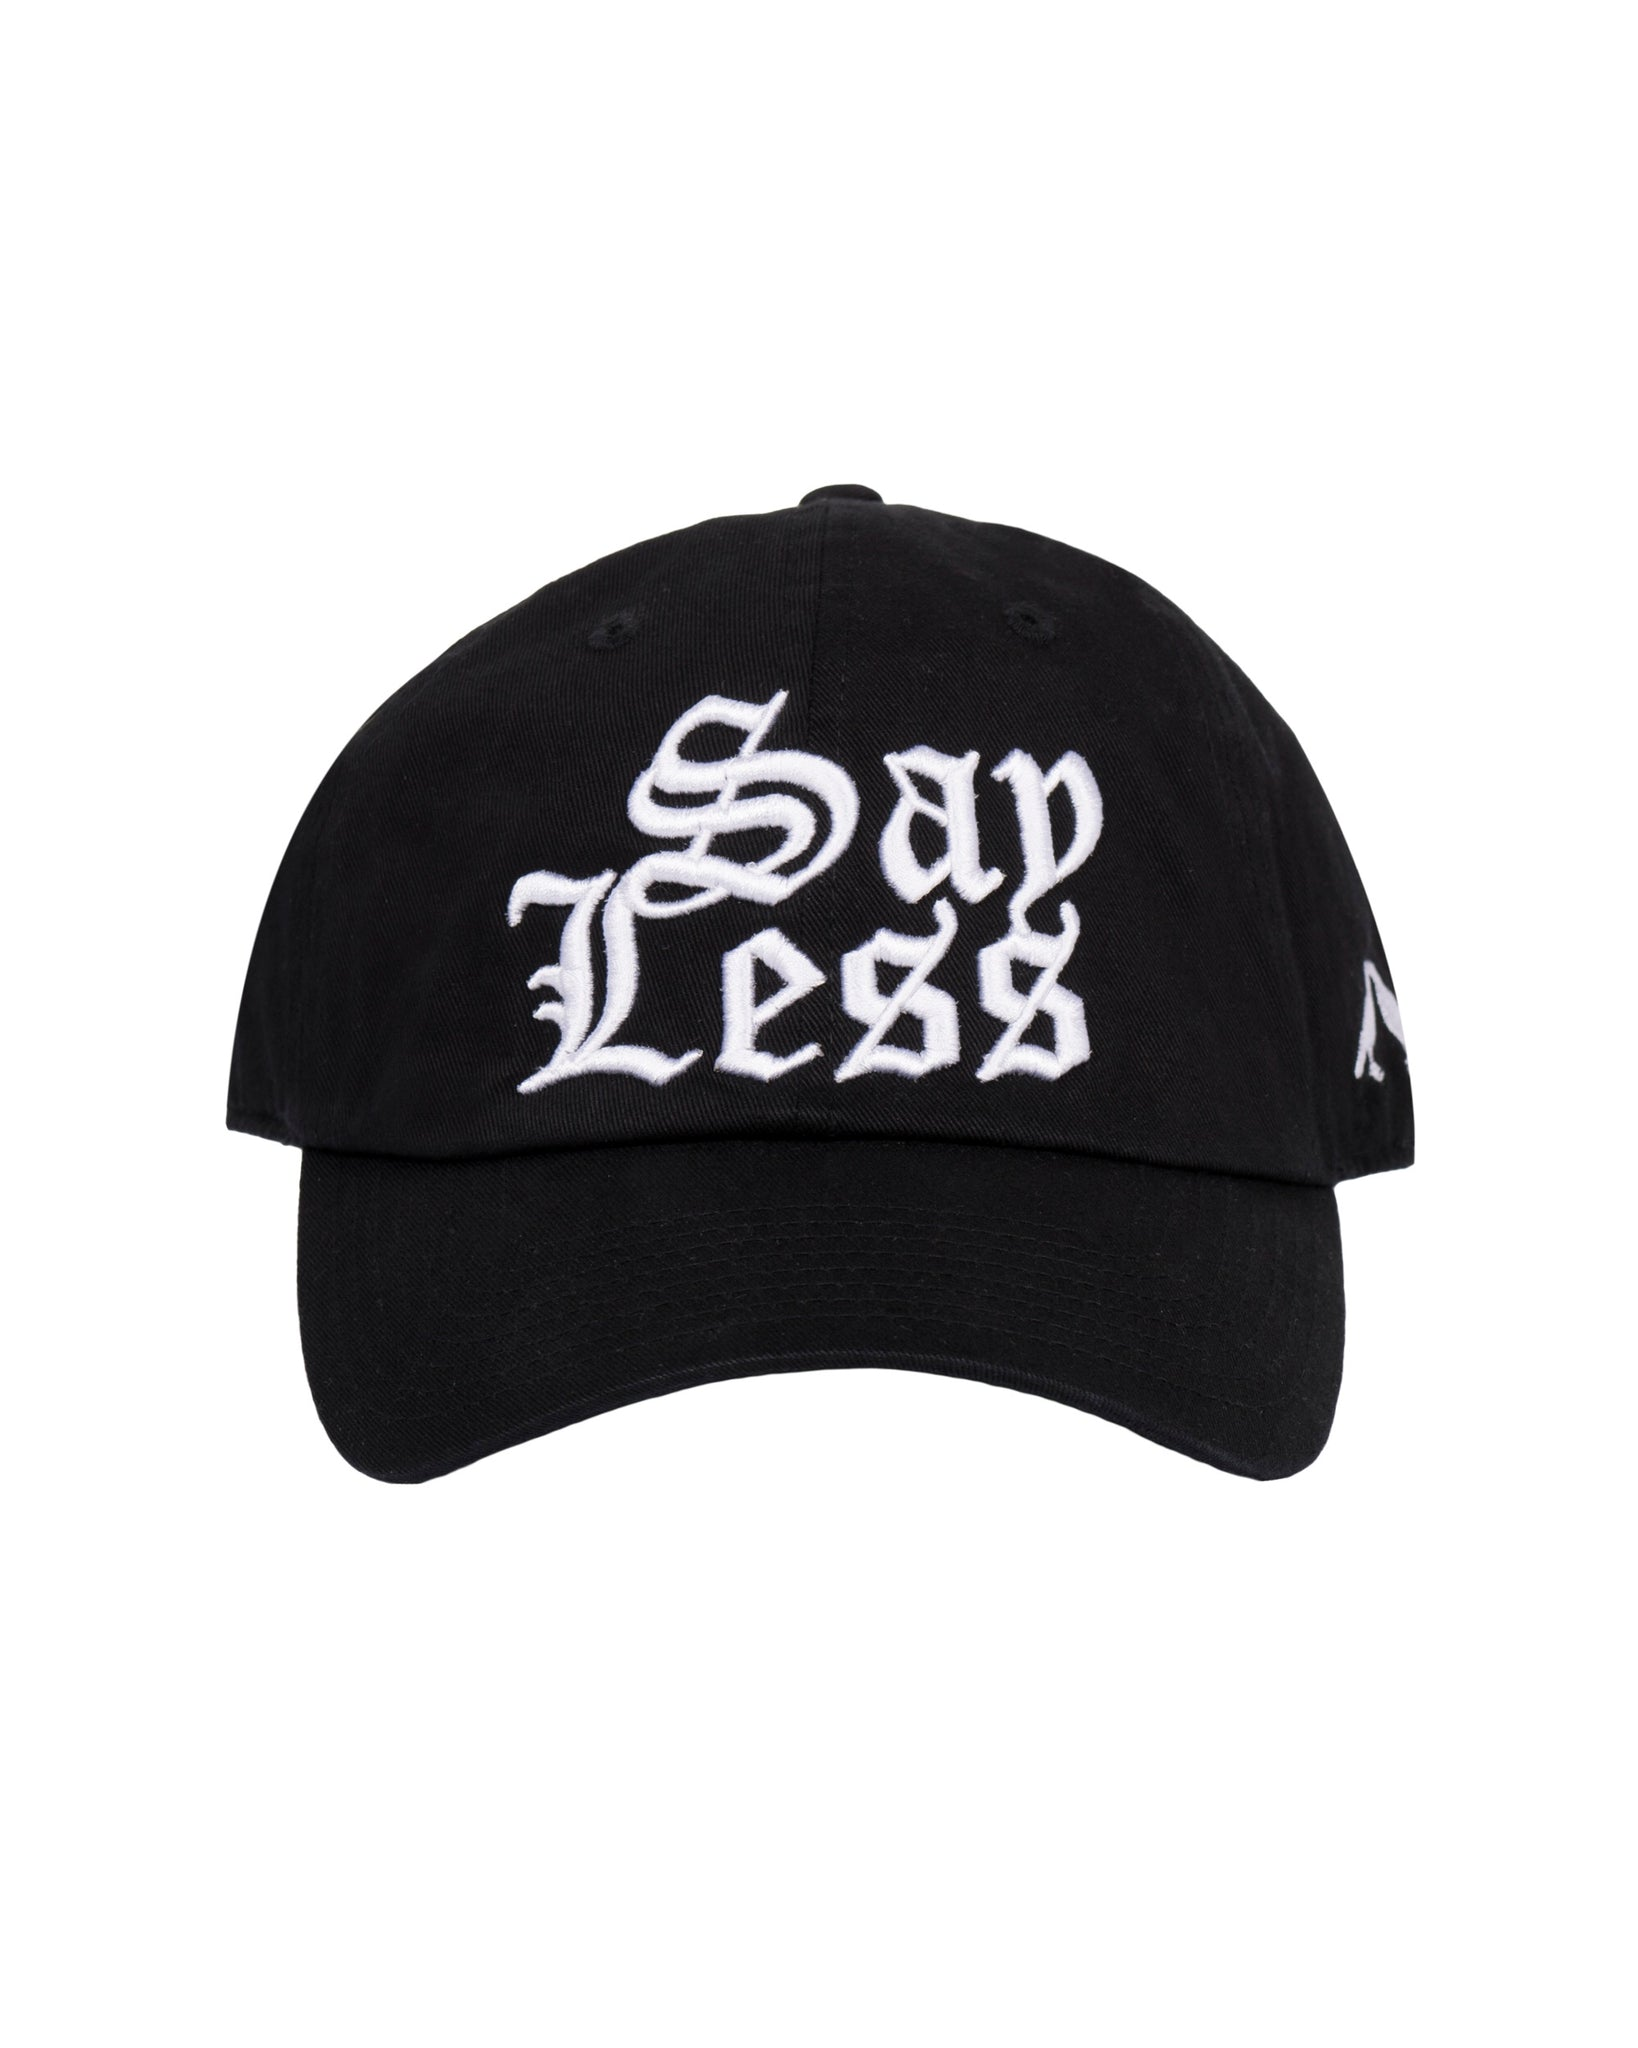 Say Less Cap (Black)